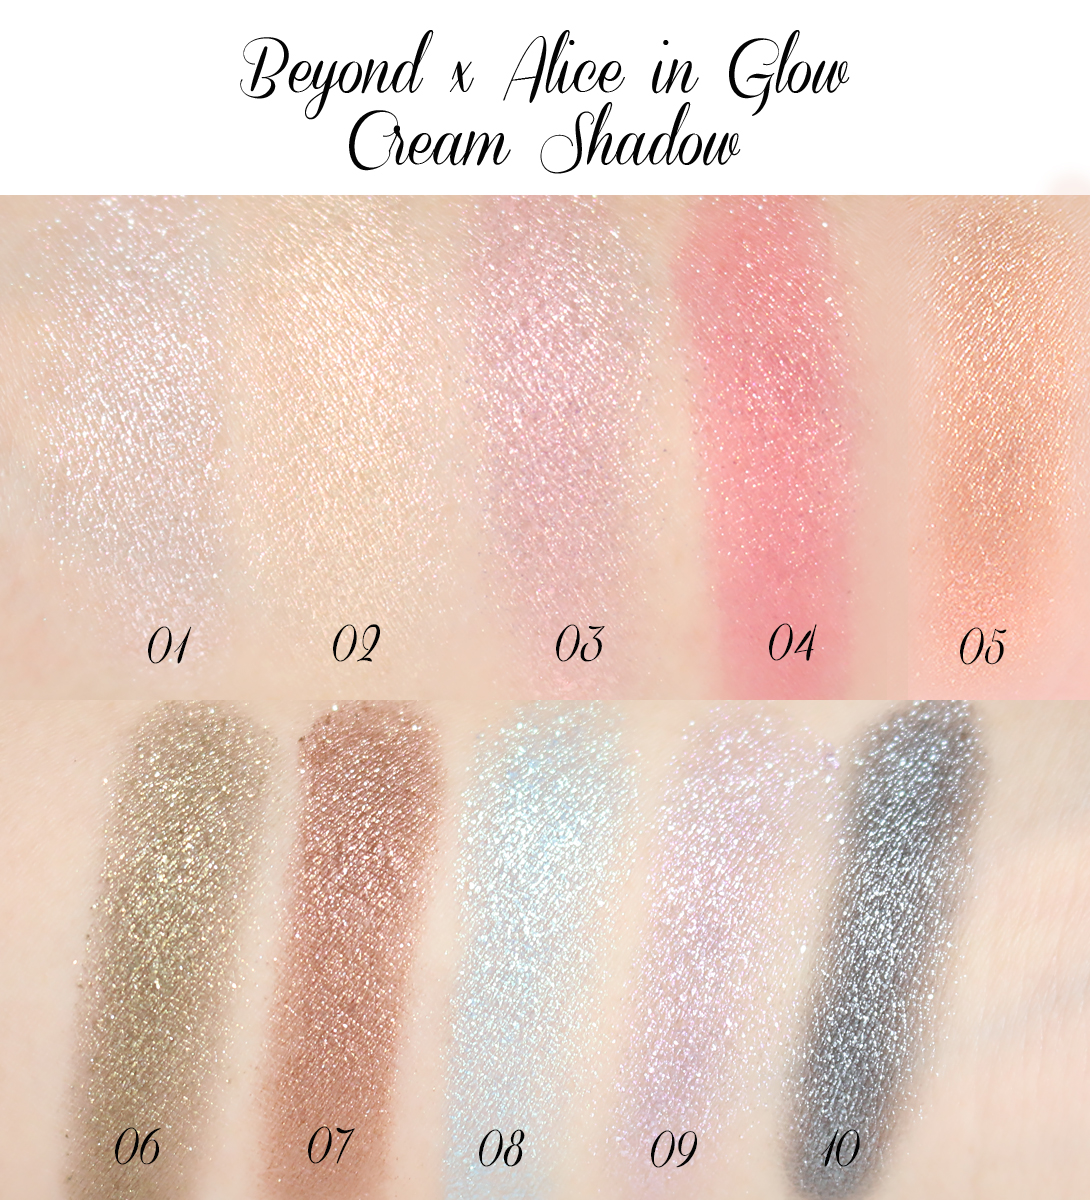 beyond, beyond cosmetics, beyond x alice, beyondxalice, alice, alice in wonderland, beyond cream shadow, beyond alice cream shadow, alice cream shadow, cream shadow, cream eyeshadow, review